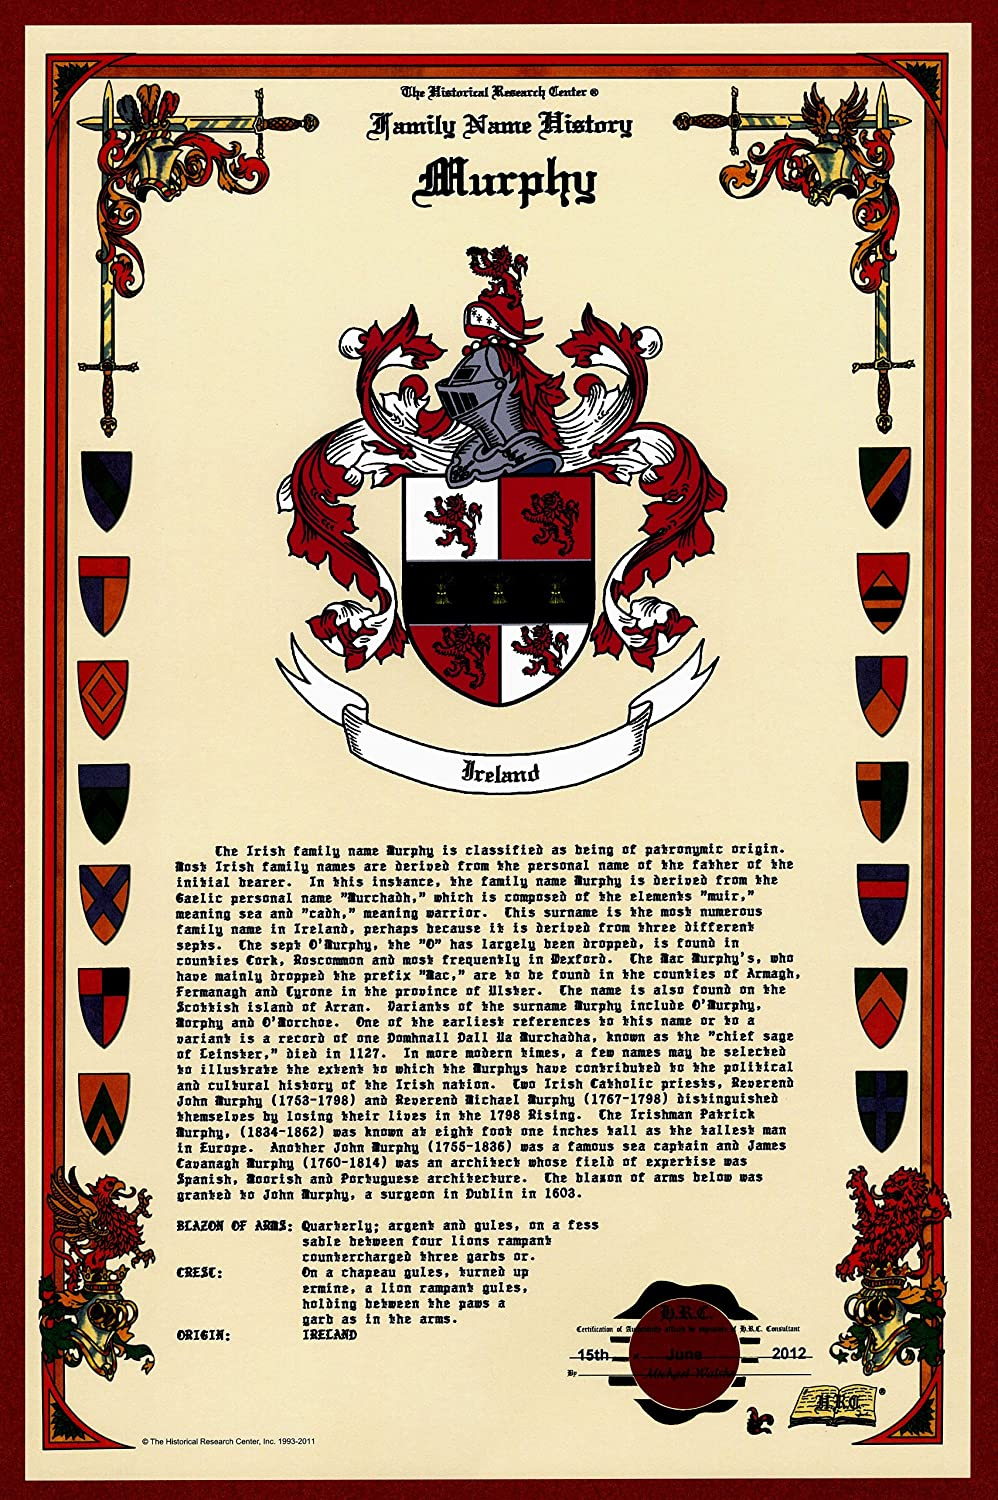 Murphy Coat of Arms/Crest and Family Name History, meaning & origin plus Genealogy/Family Tree Research aid to help find clues to ancestry, roots, namesakes and ancestors plus many other surnames at the Historical Research Center Store